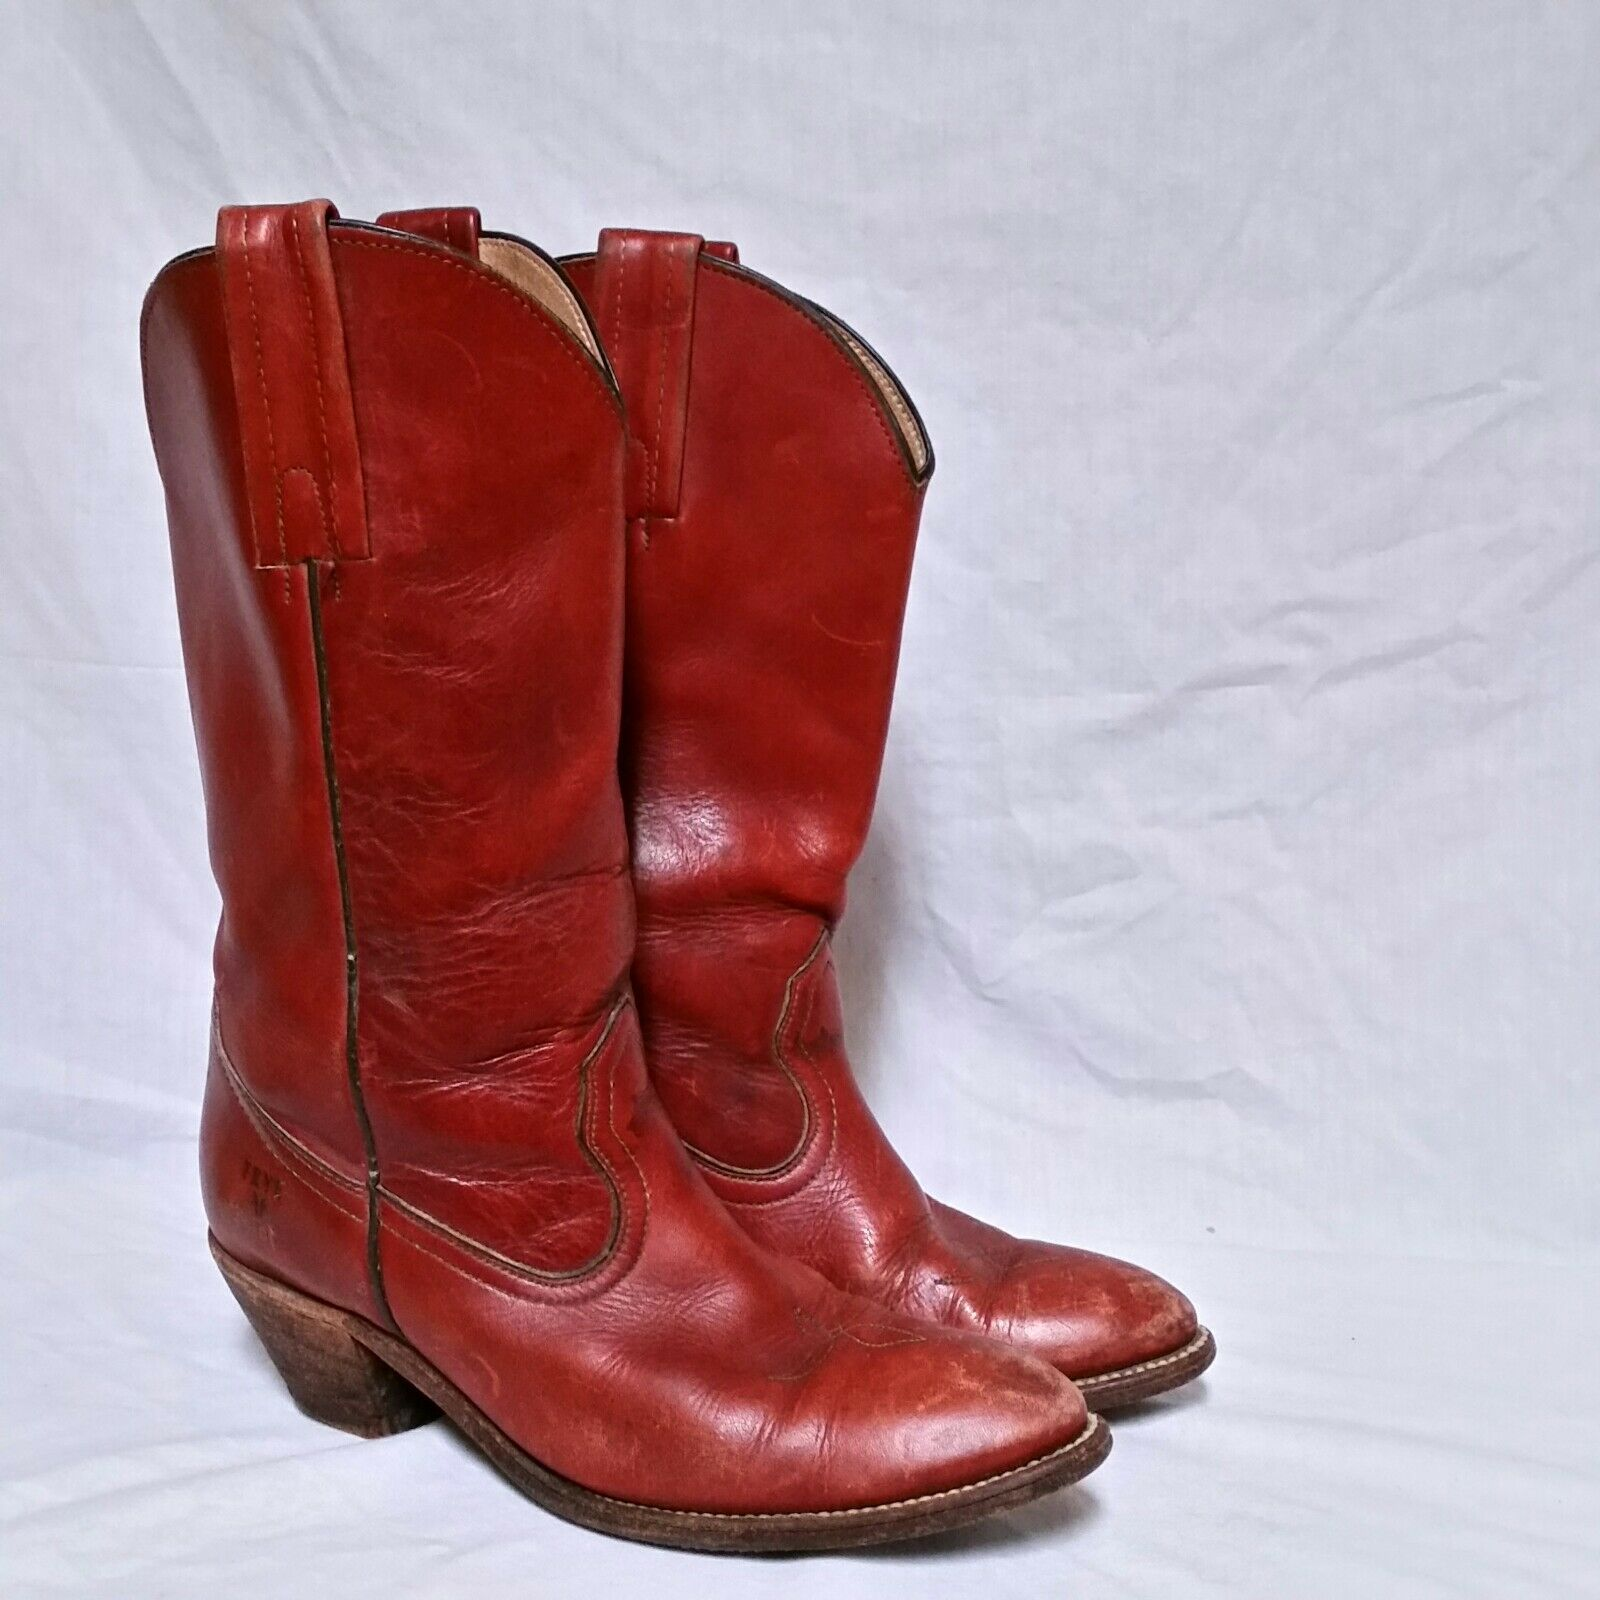 VTG Frye Melissa Boots Classic Leather Brown Western Campus Pull On Womens 8.5 B